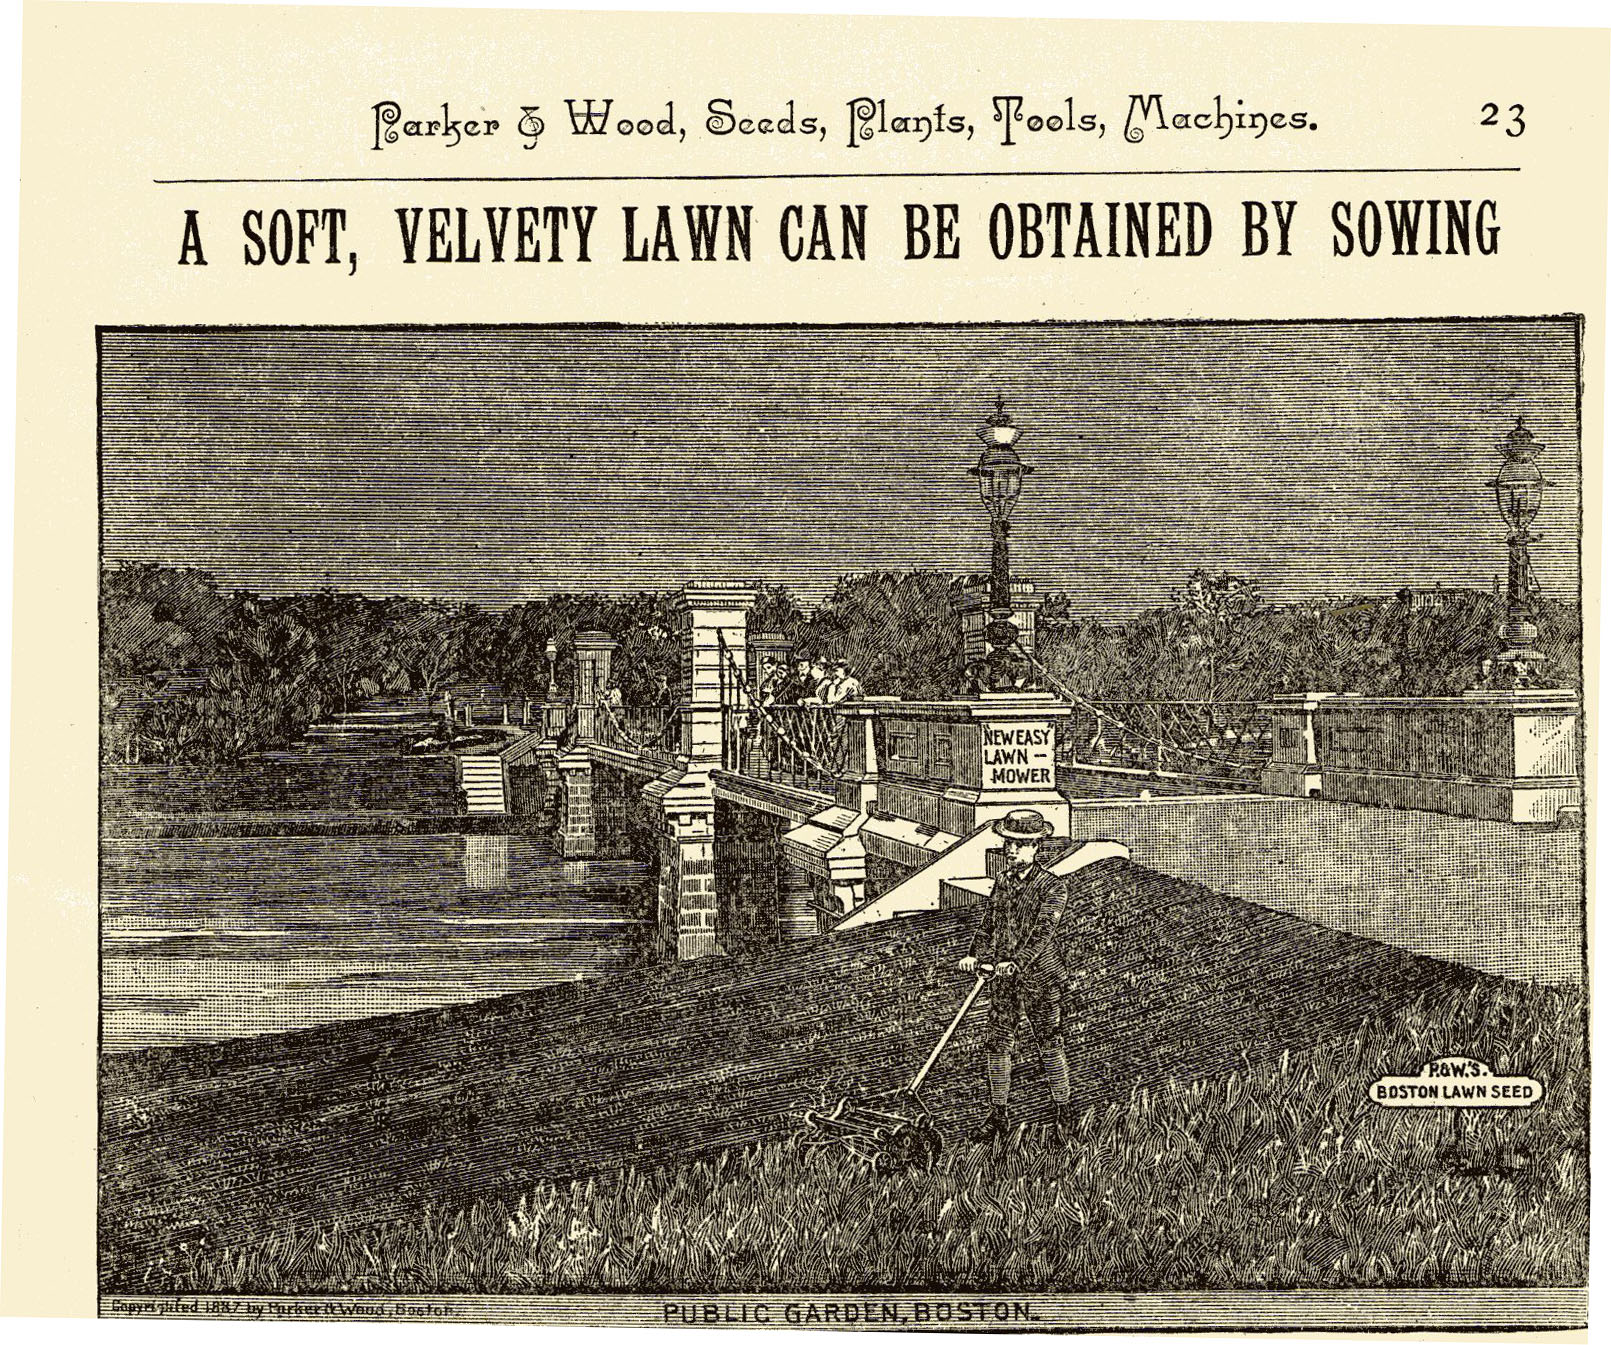 an ad for grass seed in Park & Wood Catalog 1889